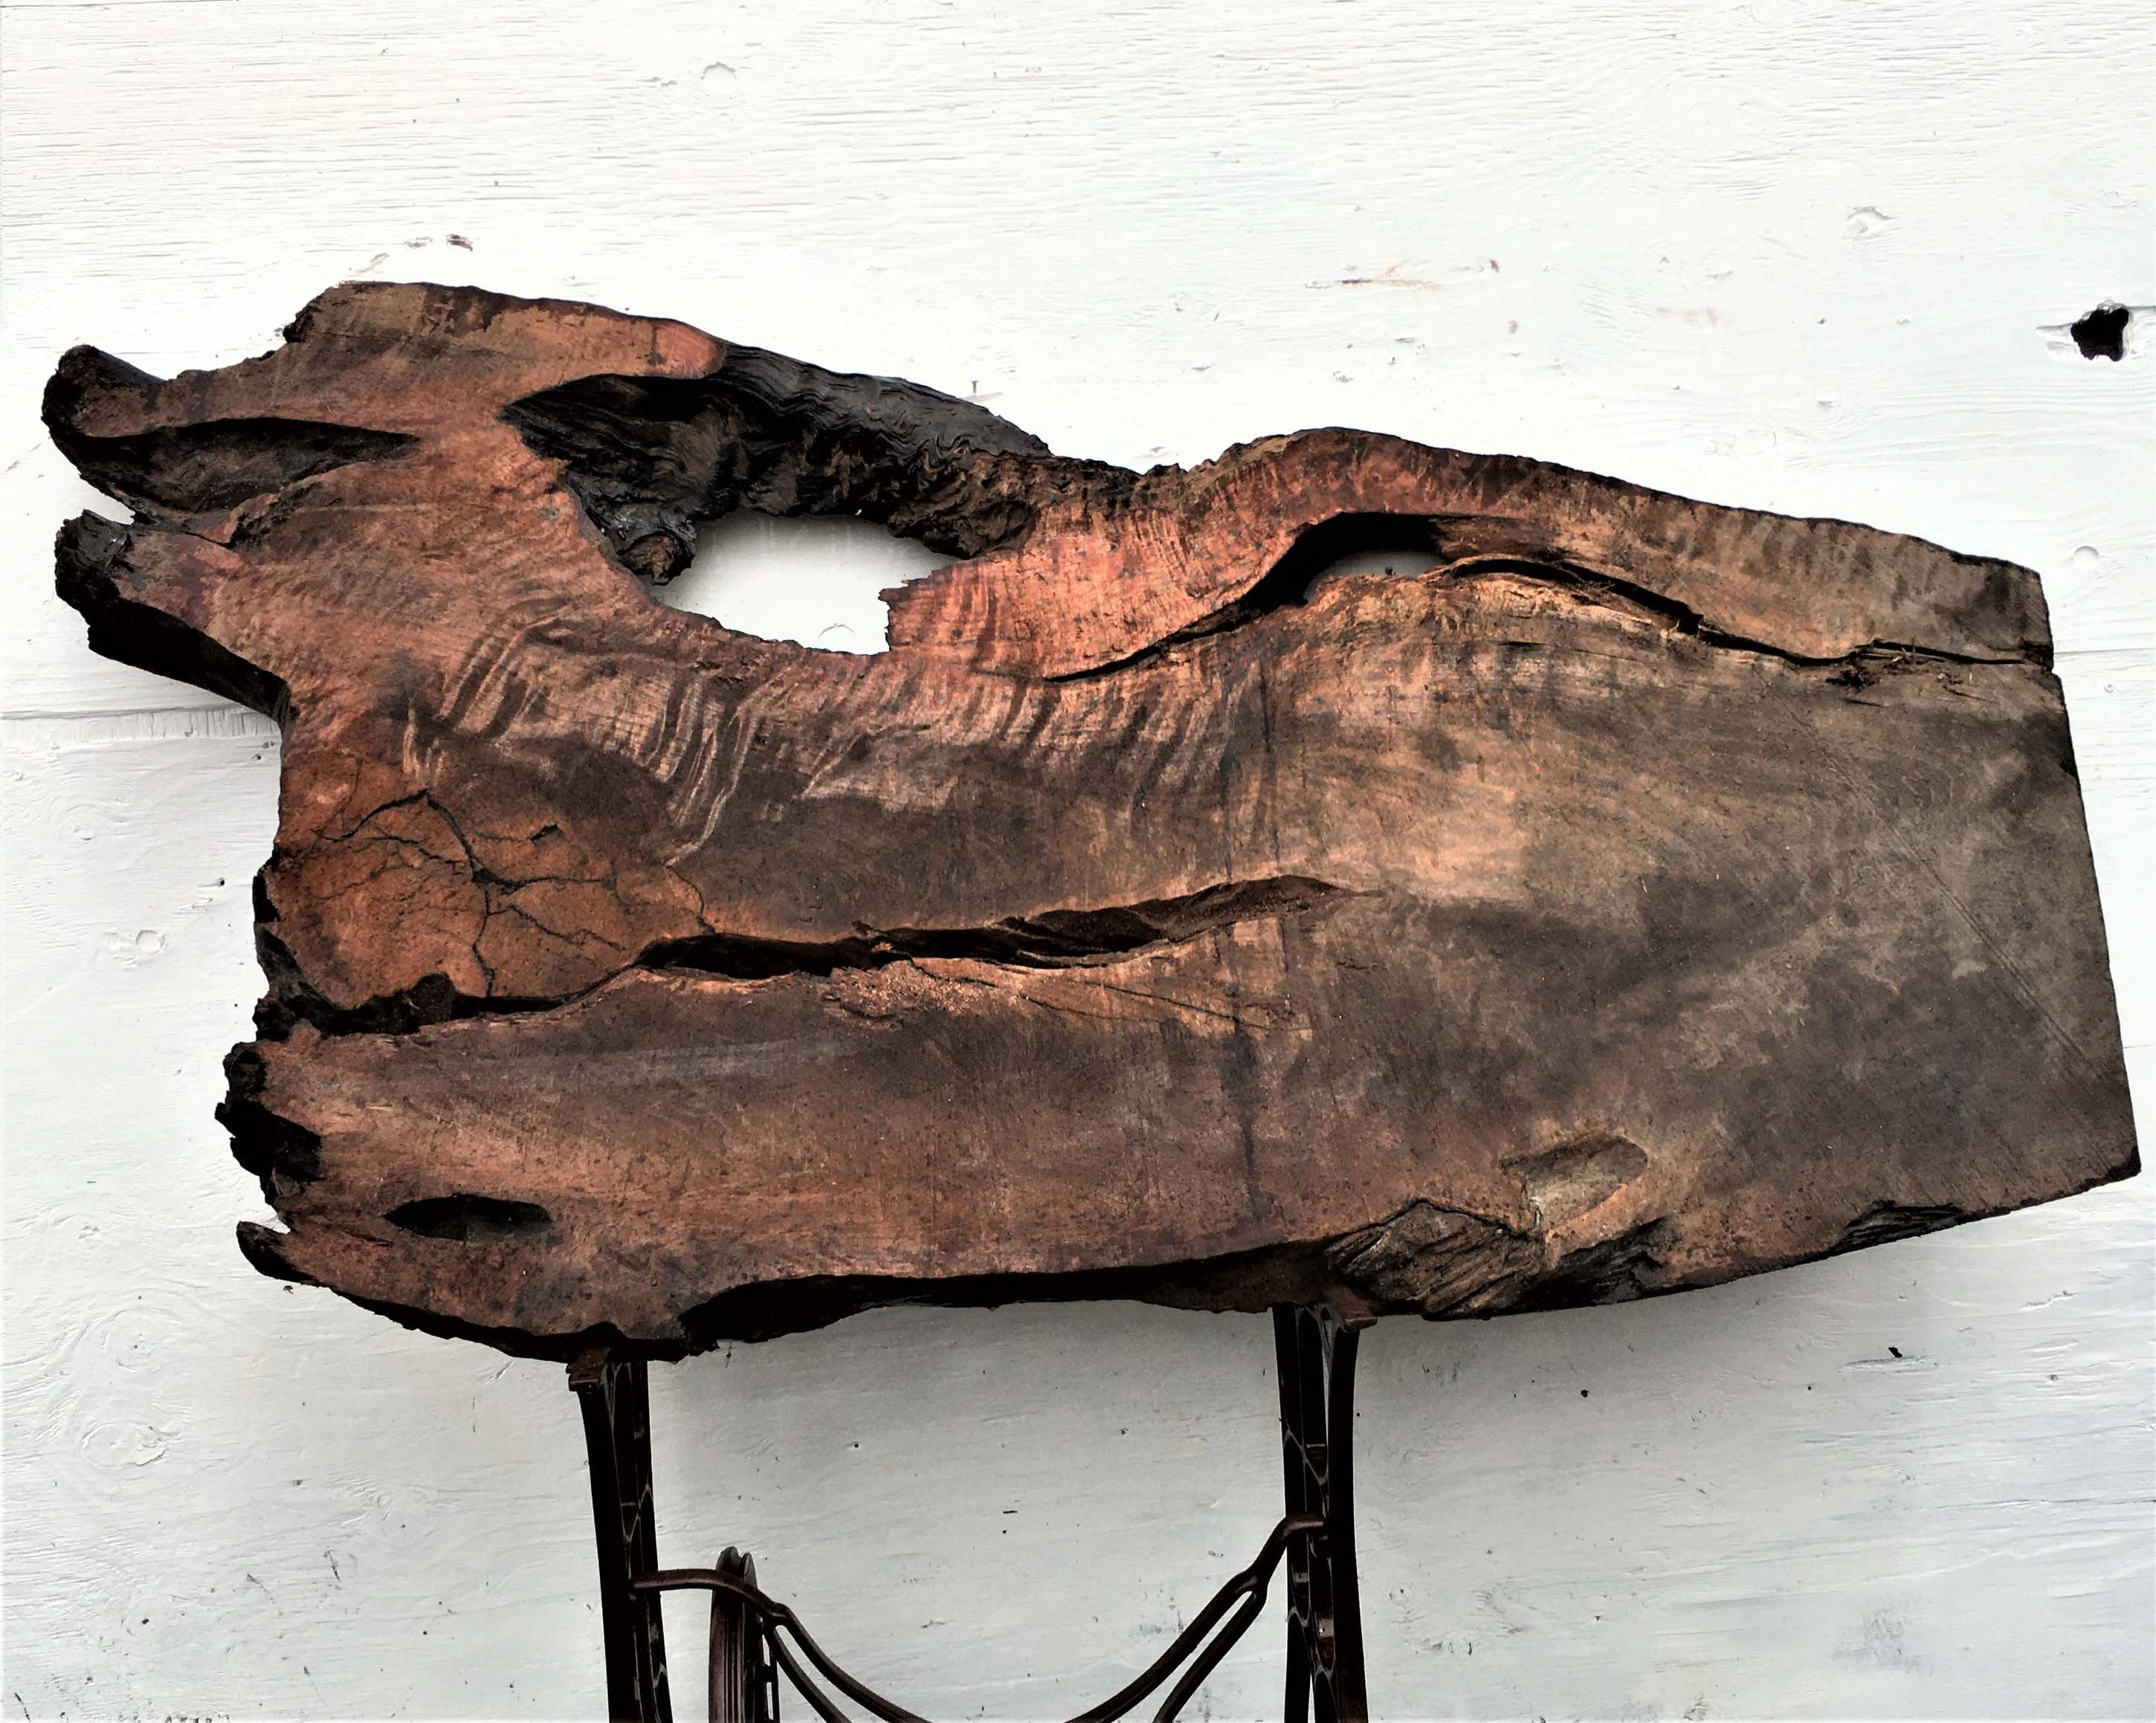 live edge redwood burl slab | river table | rustic table | bsz756